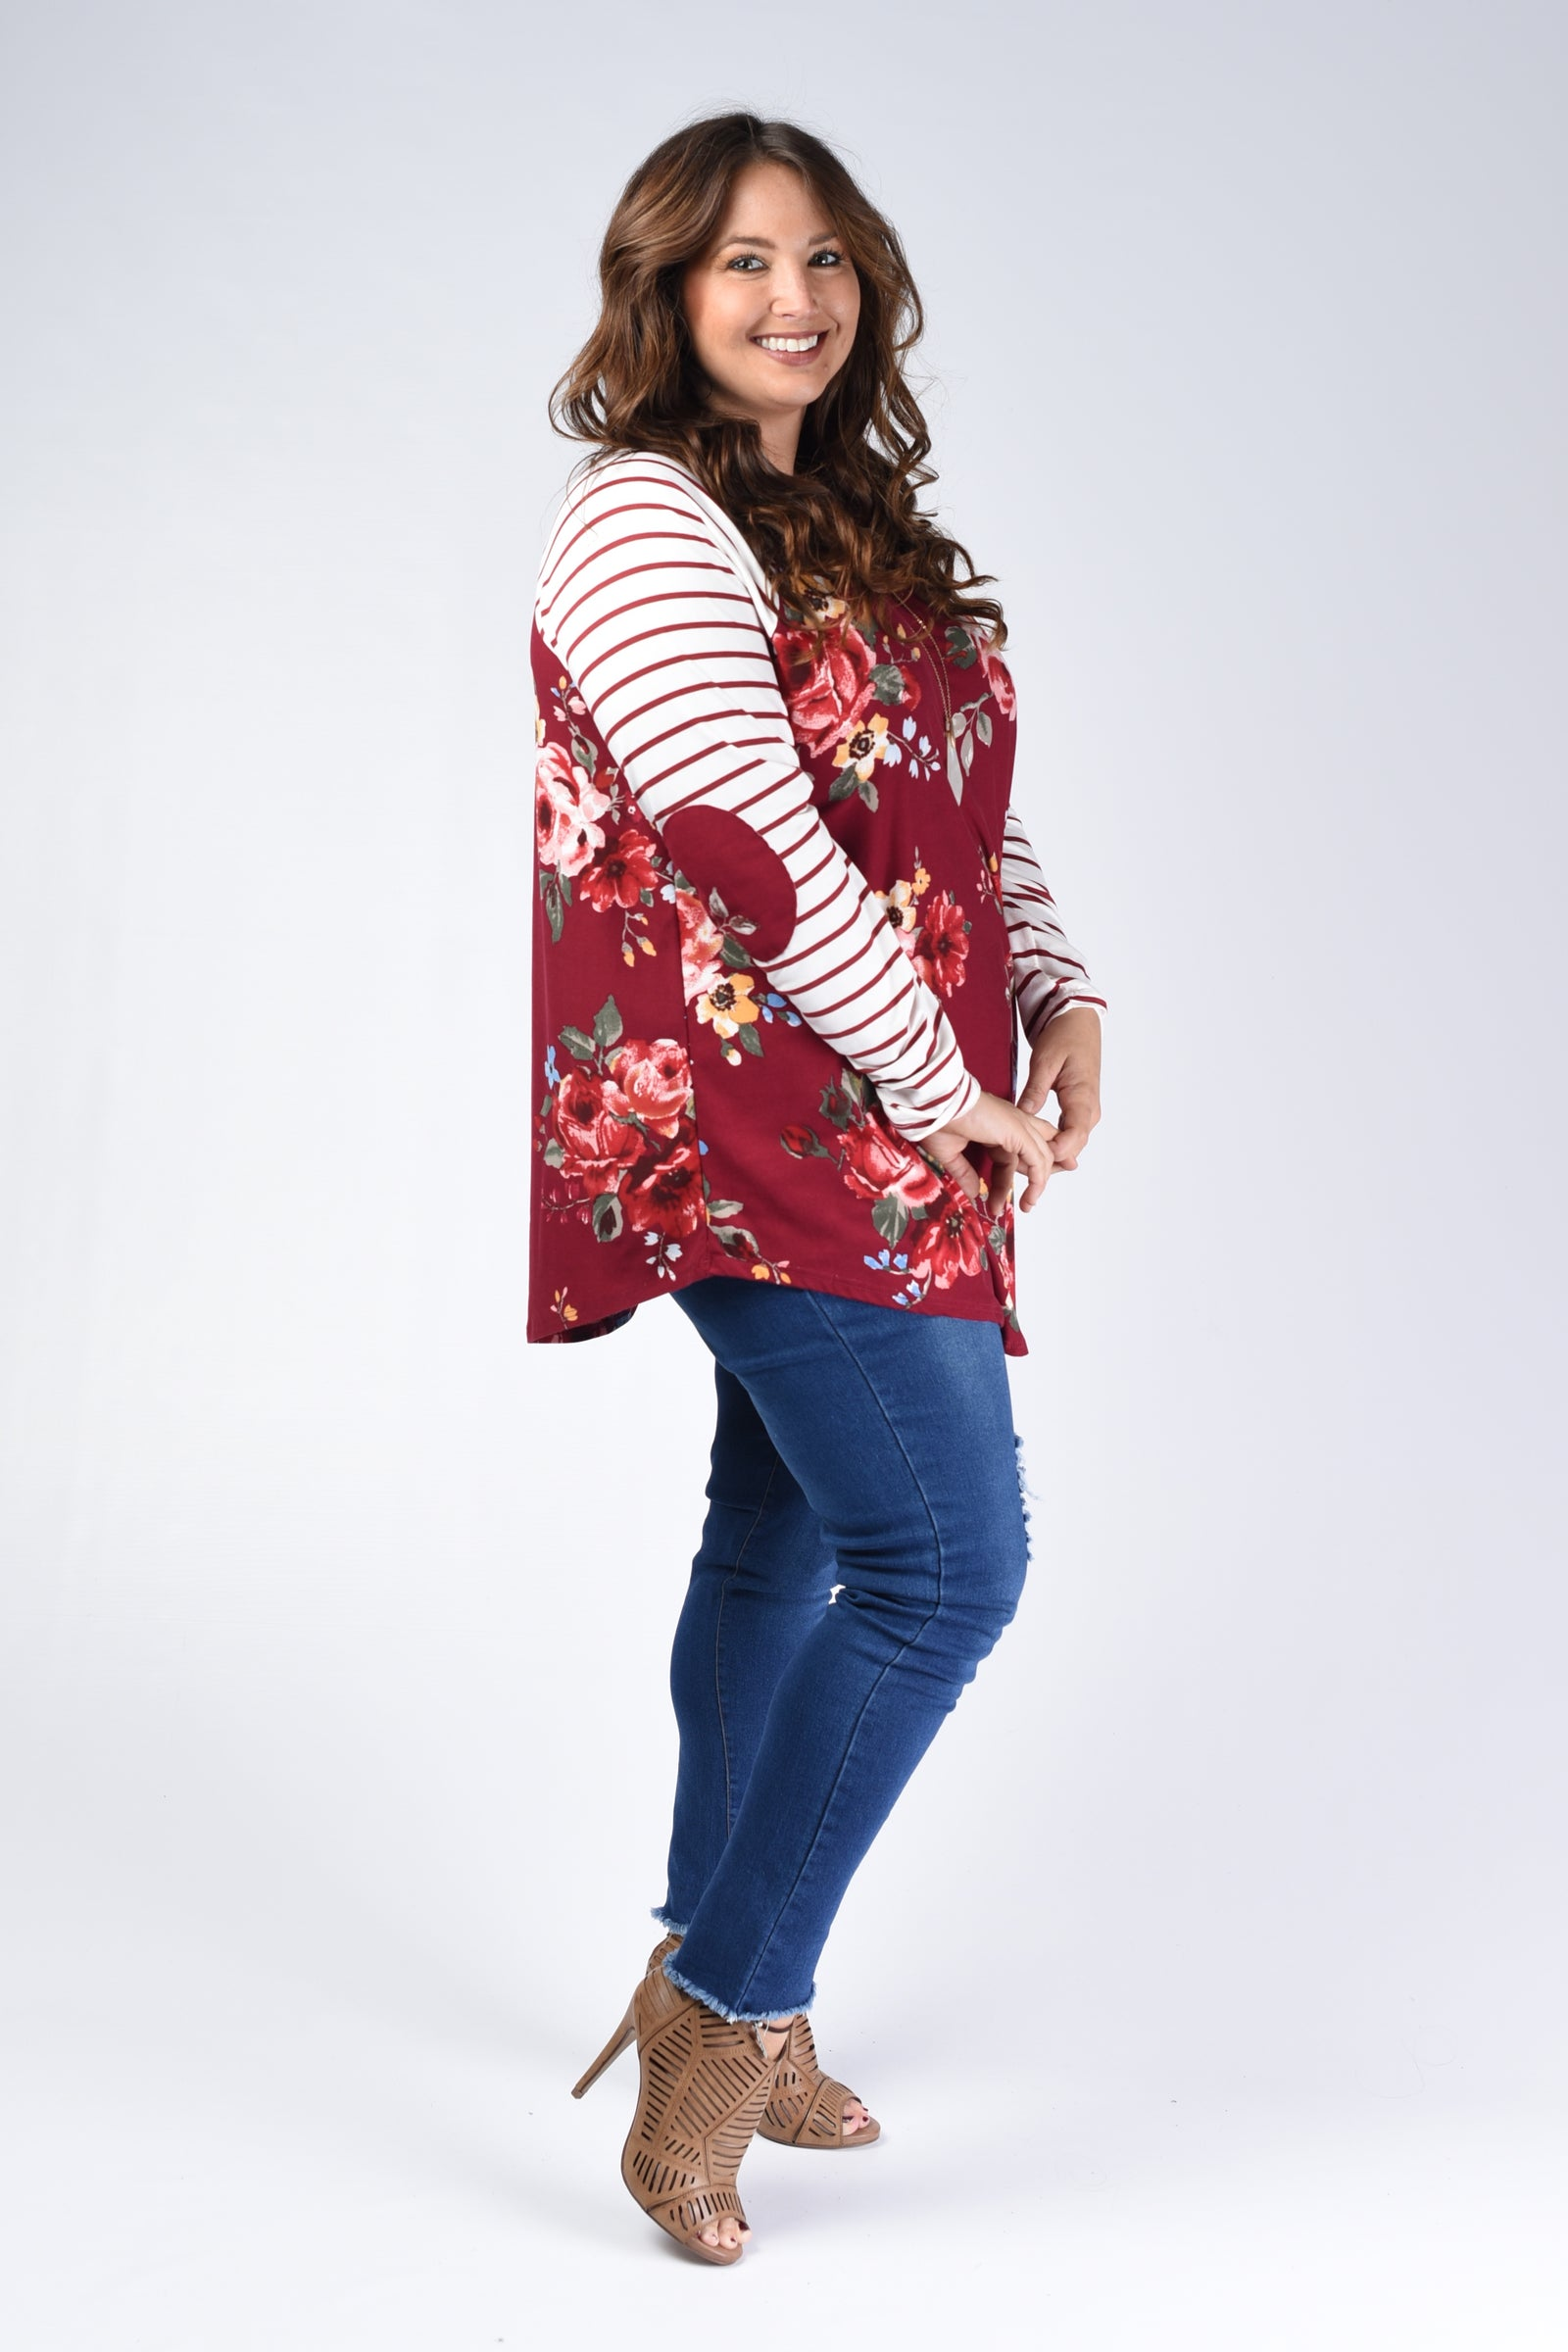 Wine Floral Elbow Patch Top (Mommy & Me) - www.mycurvystore.com - Curvy Boutique - Plus Size